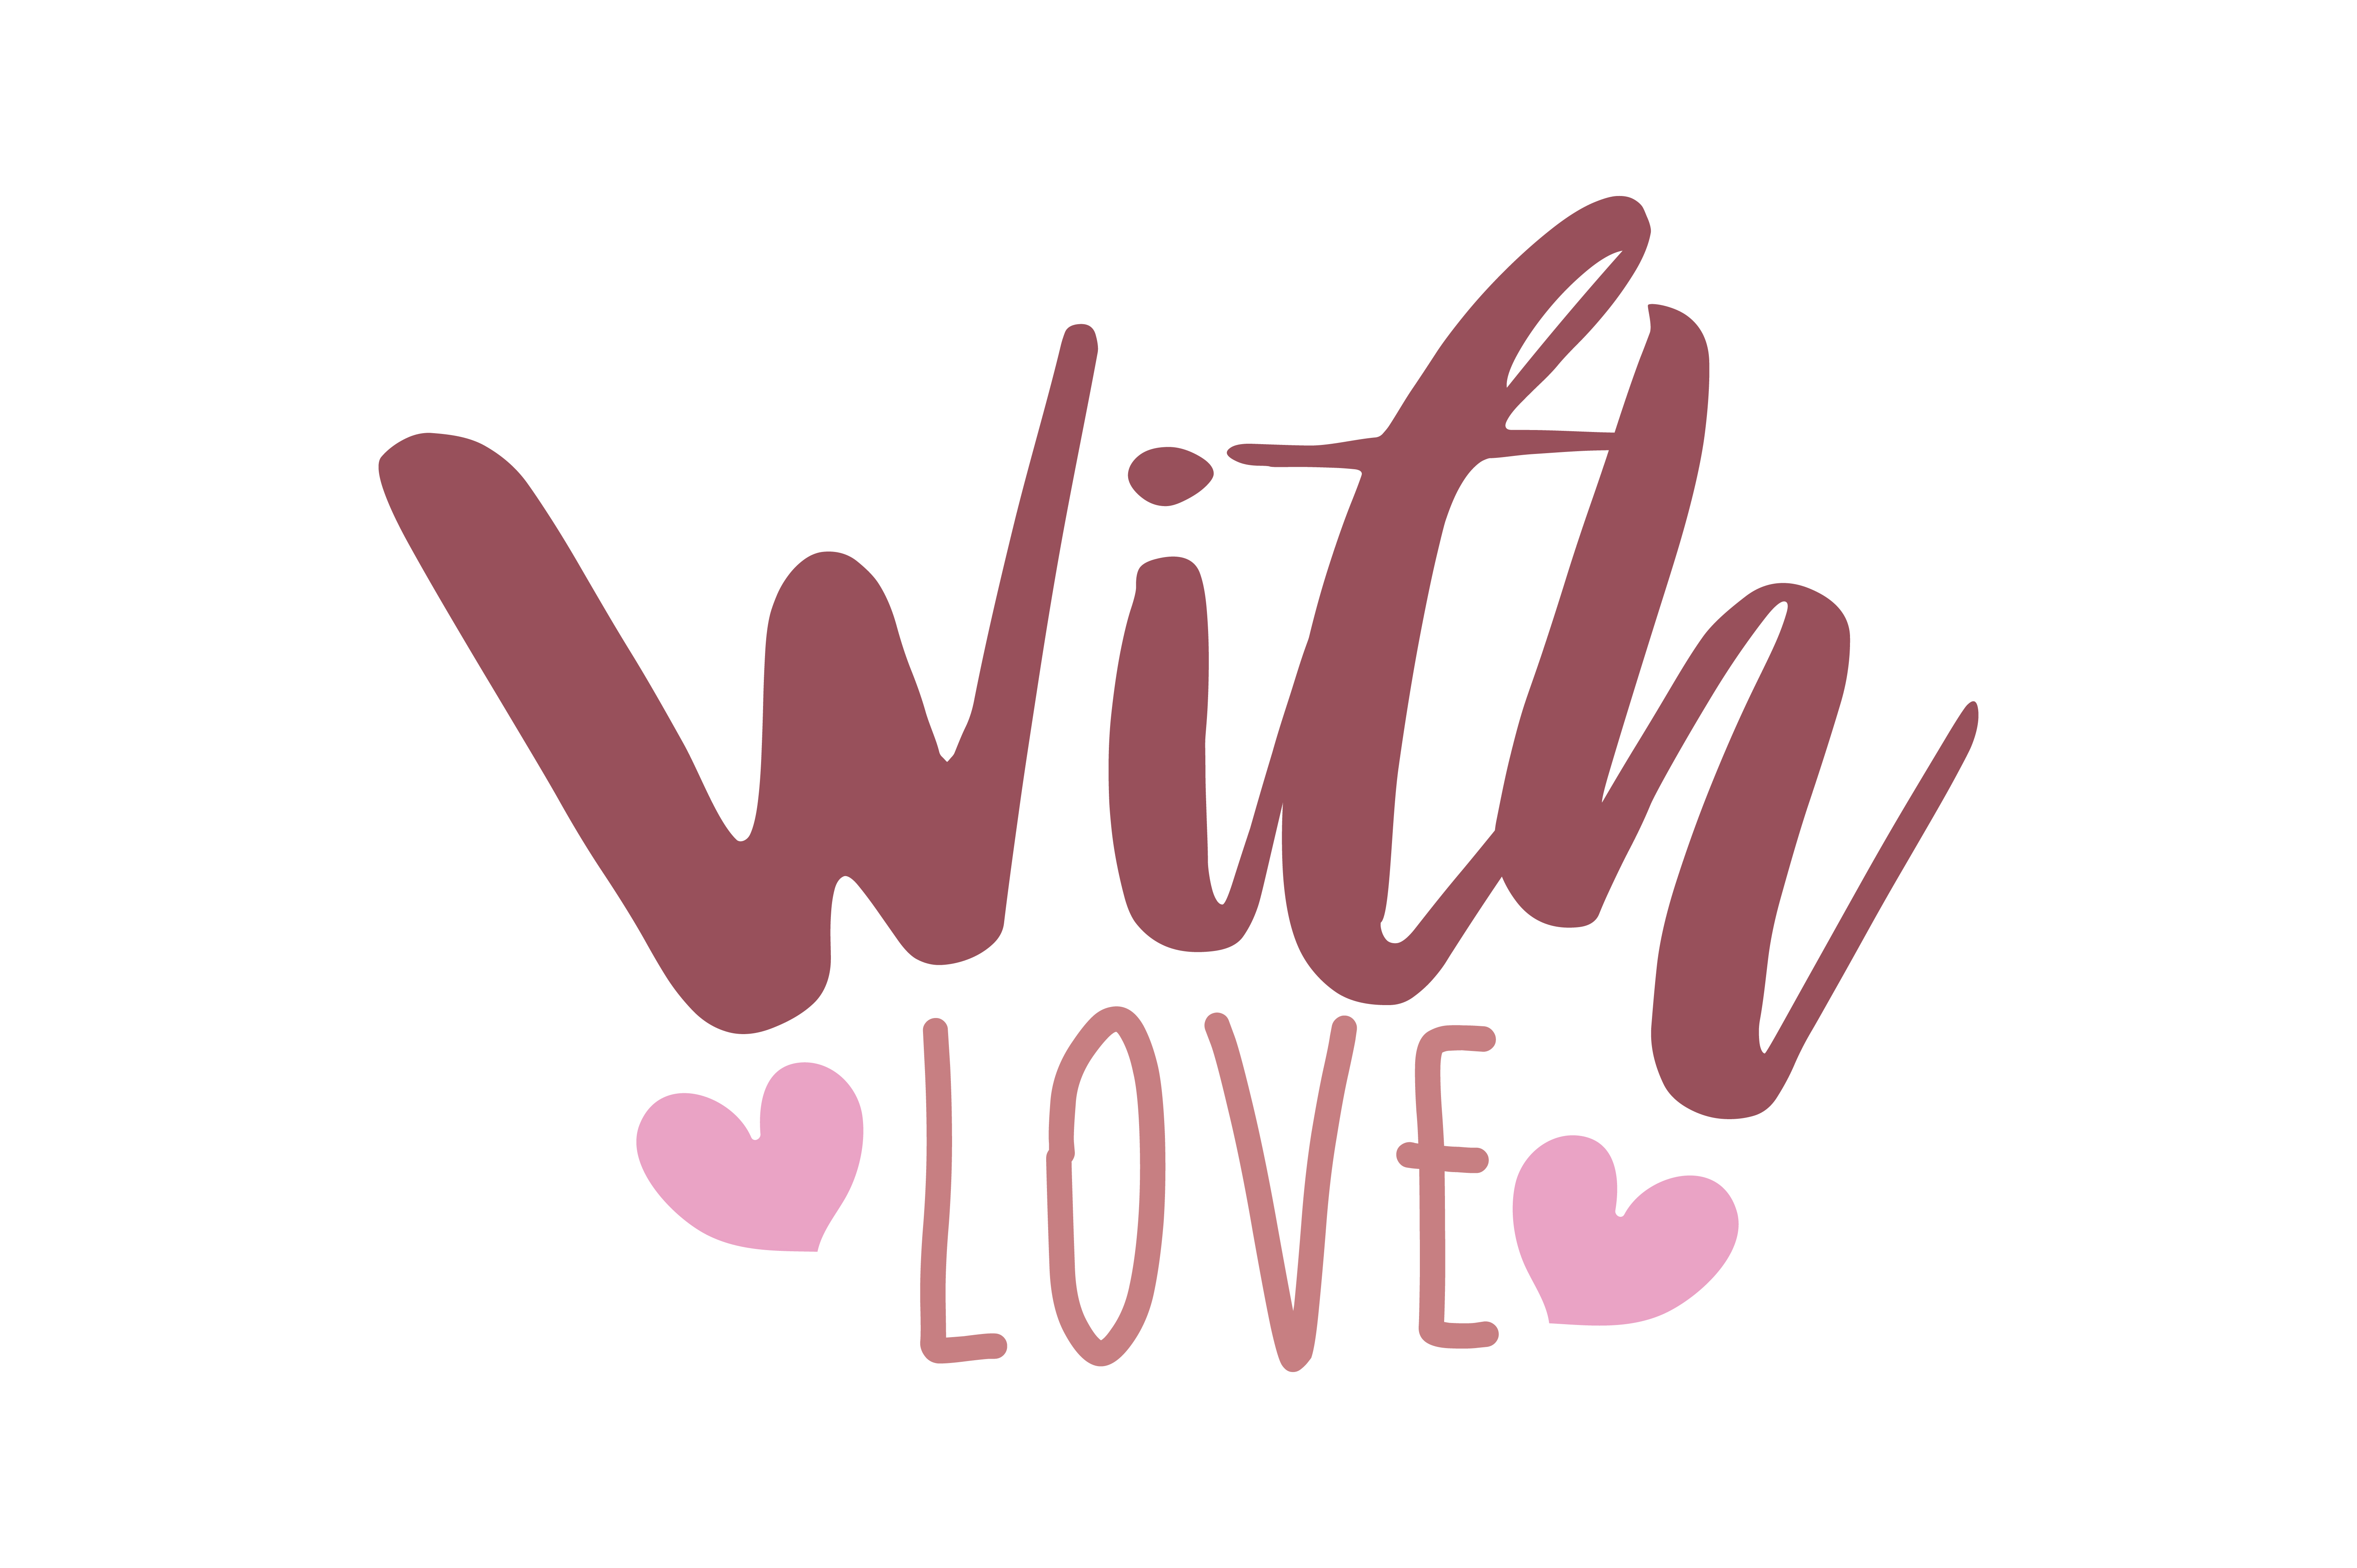 Download Free With Love Quote Svg Cut Graphic By Thelucky Creative Fabrica for Cricut Explore, Silhouette and other cutting machines.